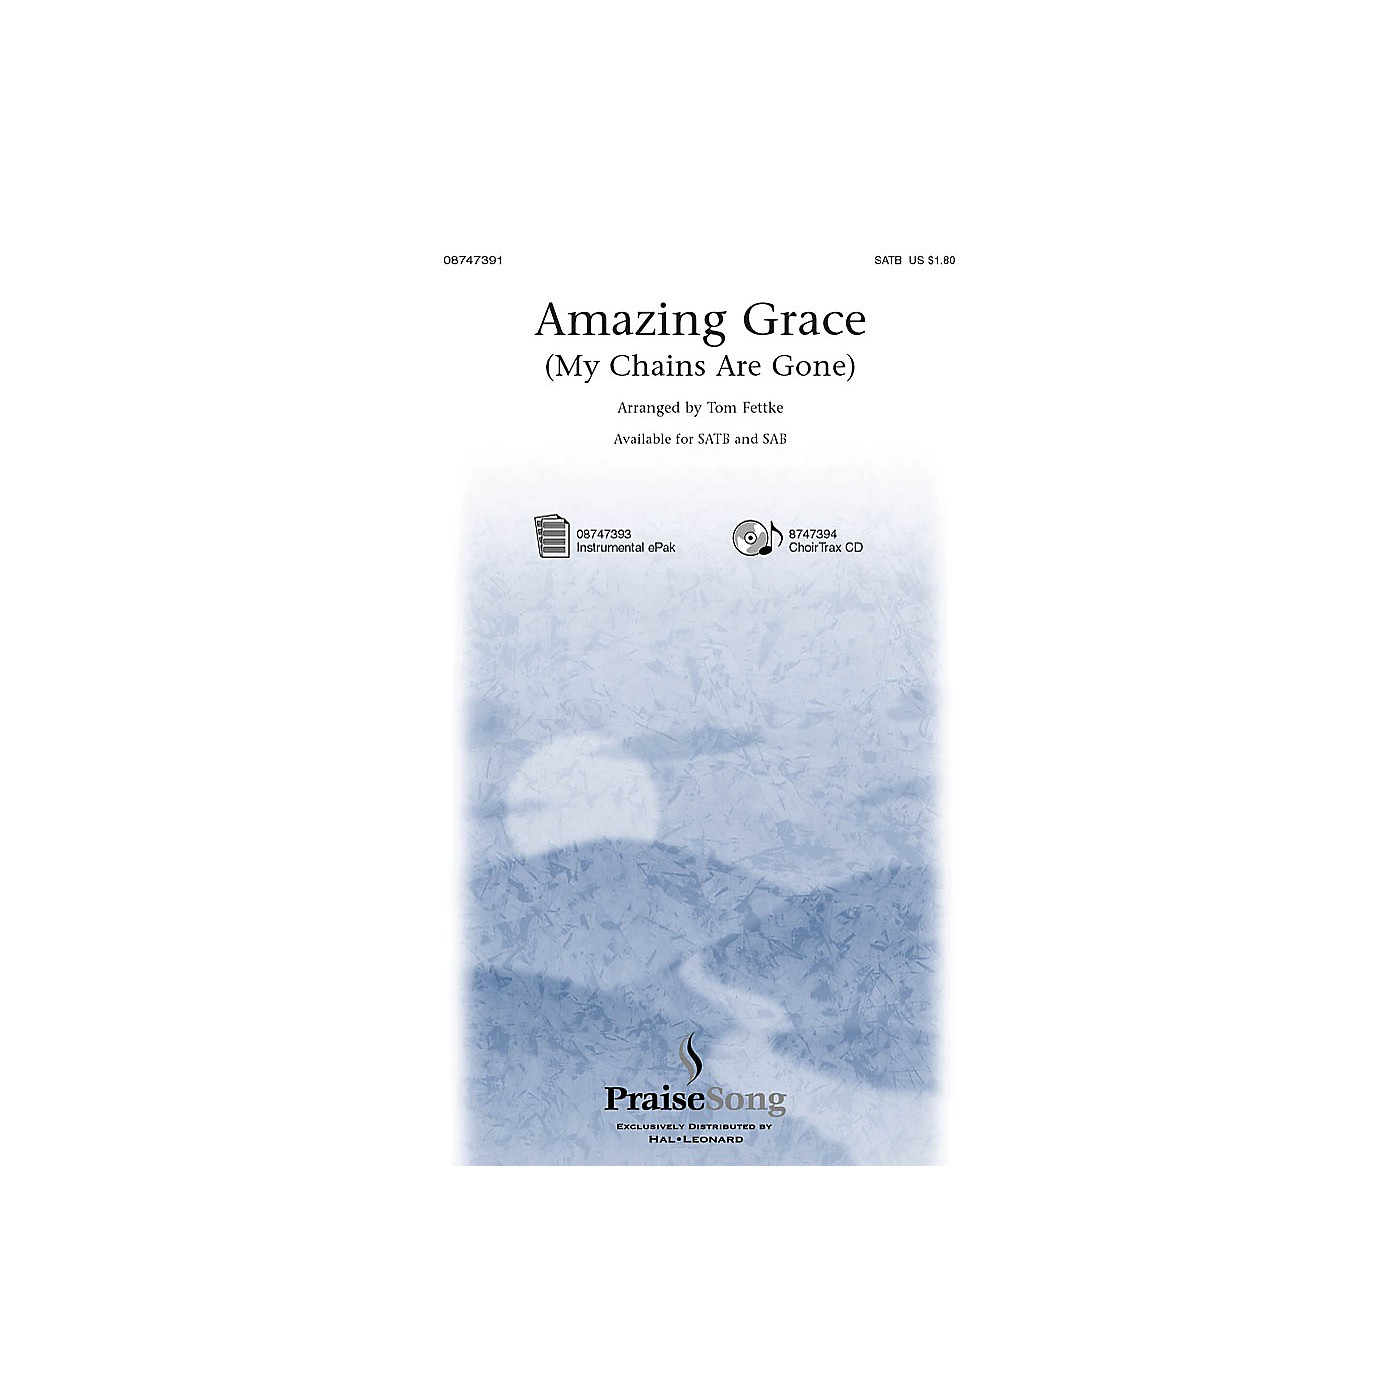 PraiseSong Amazing Grace (My Chains Are Gone) CHOIRTRAX CD by Chris Tomlin Arranged by Tom Fettke thumbnail